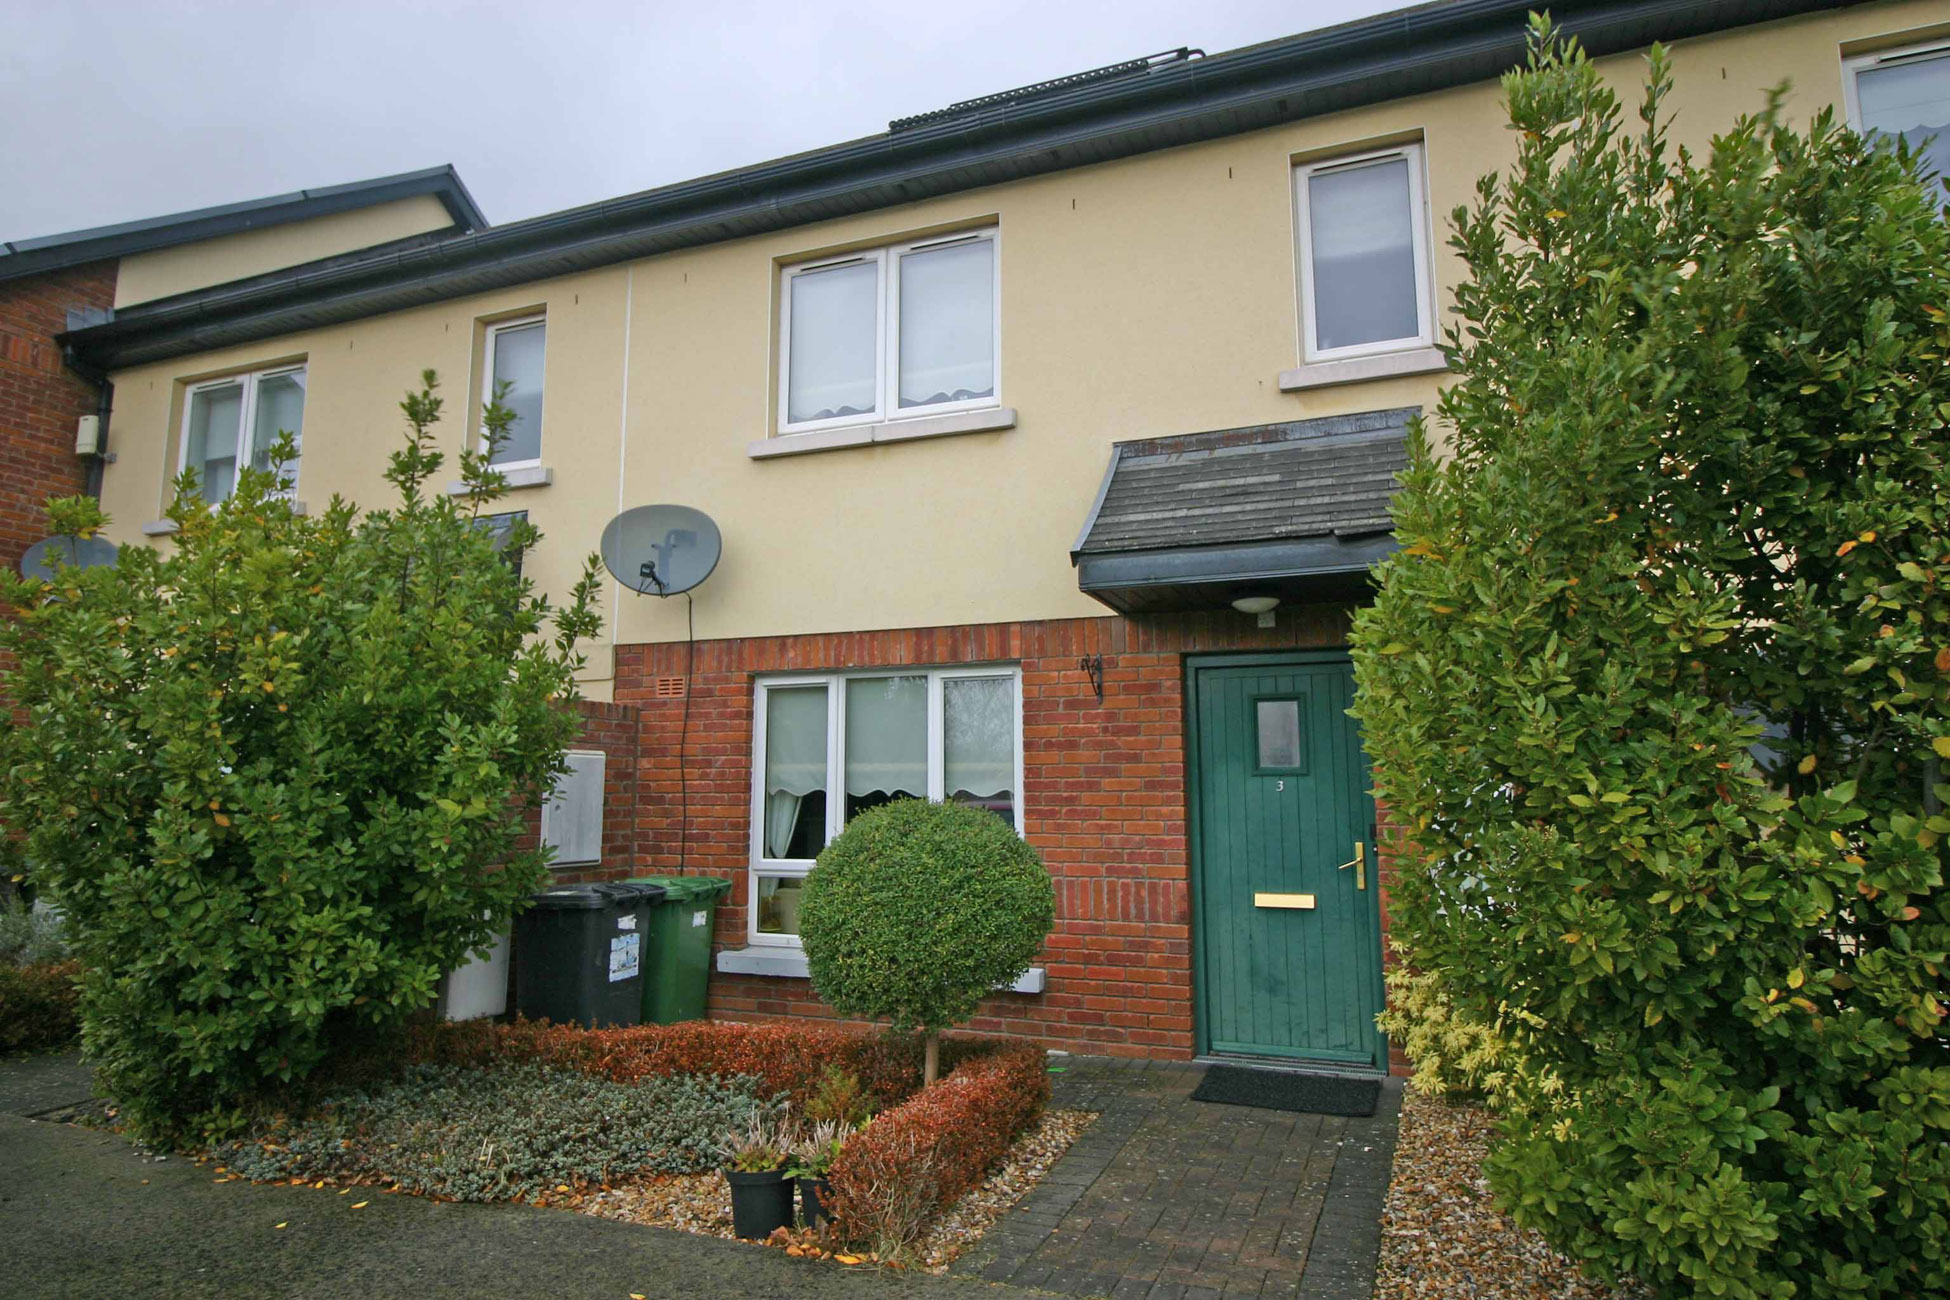 3 Listoke Avenue, Liscorrie, Drogheda, Louth